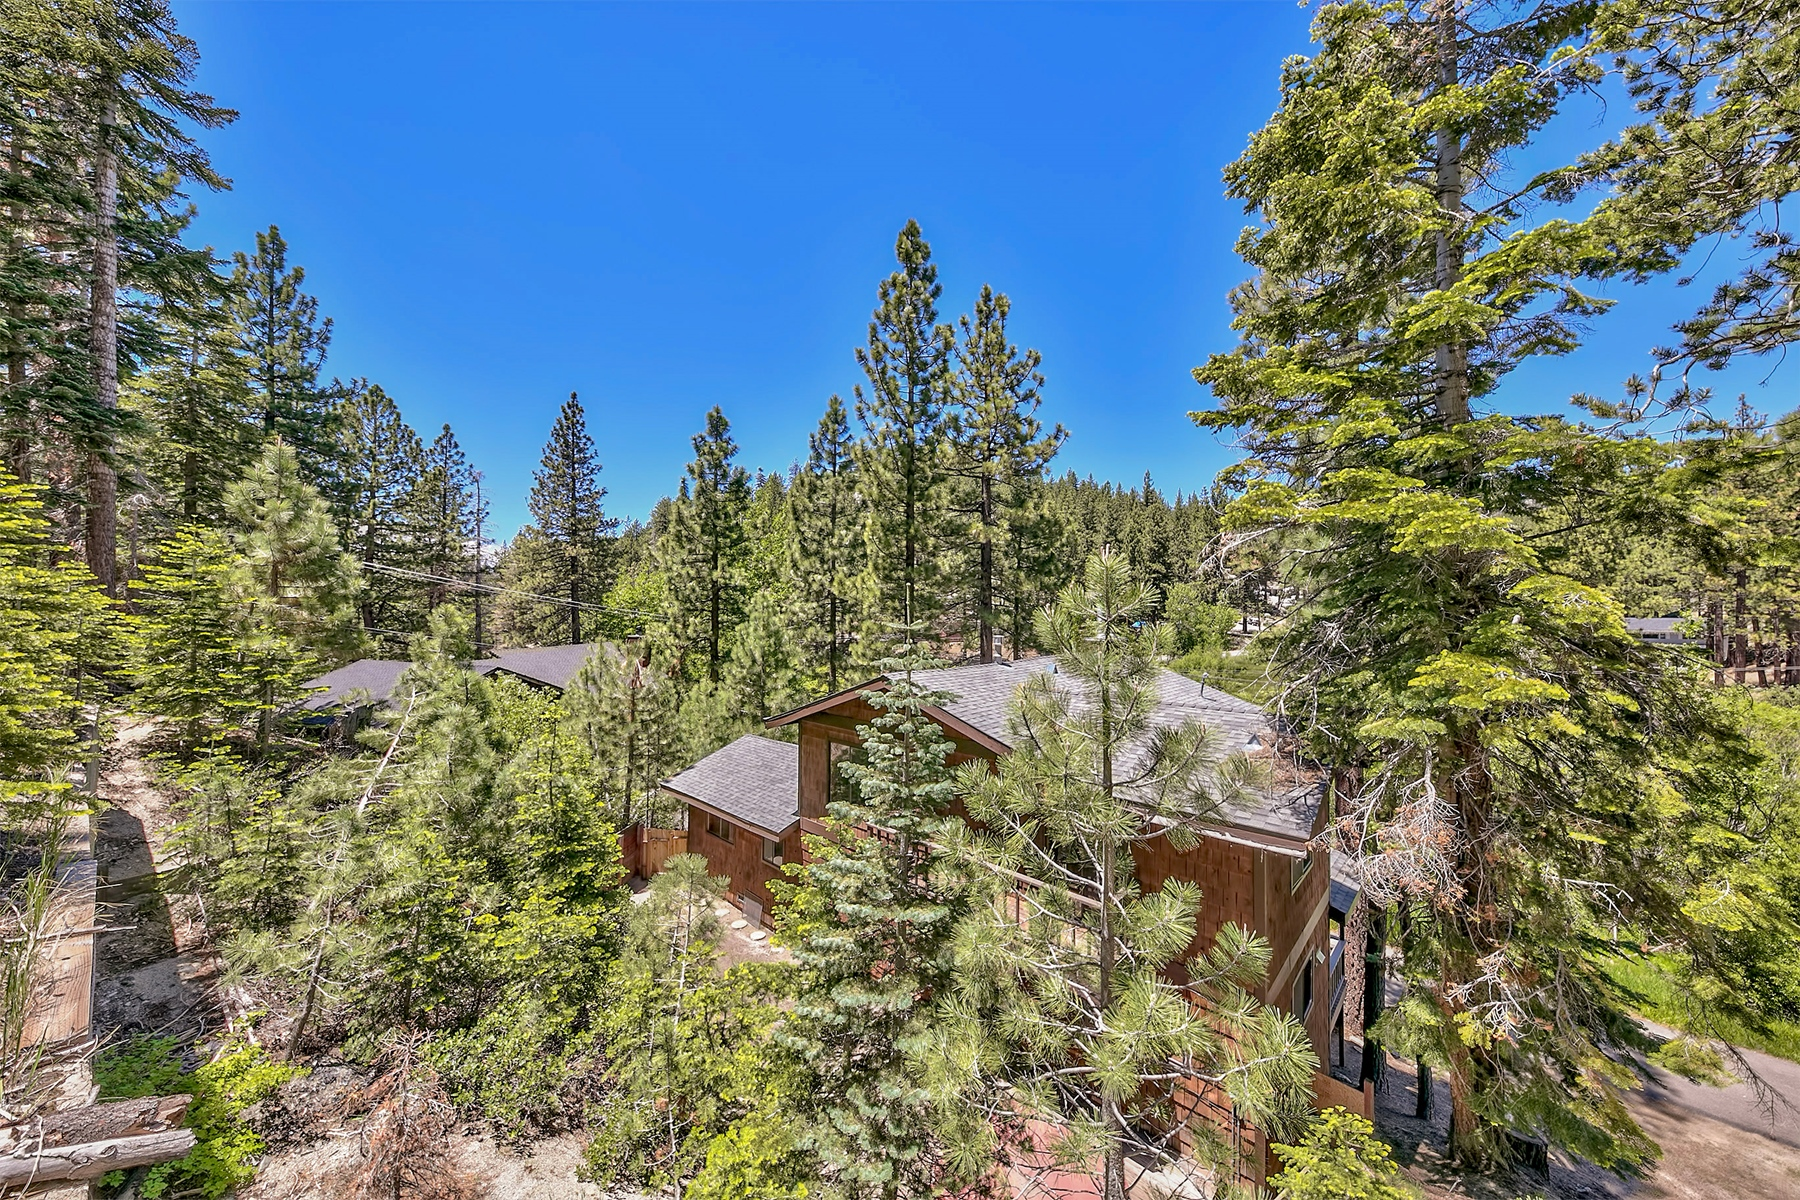 Additional photo for property listing at 563 Ansaldo Acres Road, Stateline,  NV 96150 563 Ansaldo Acres Road Stateline, Nevada 89449 United States